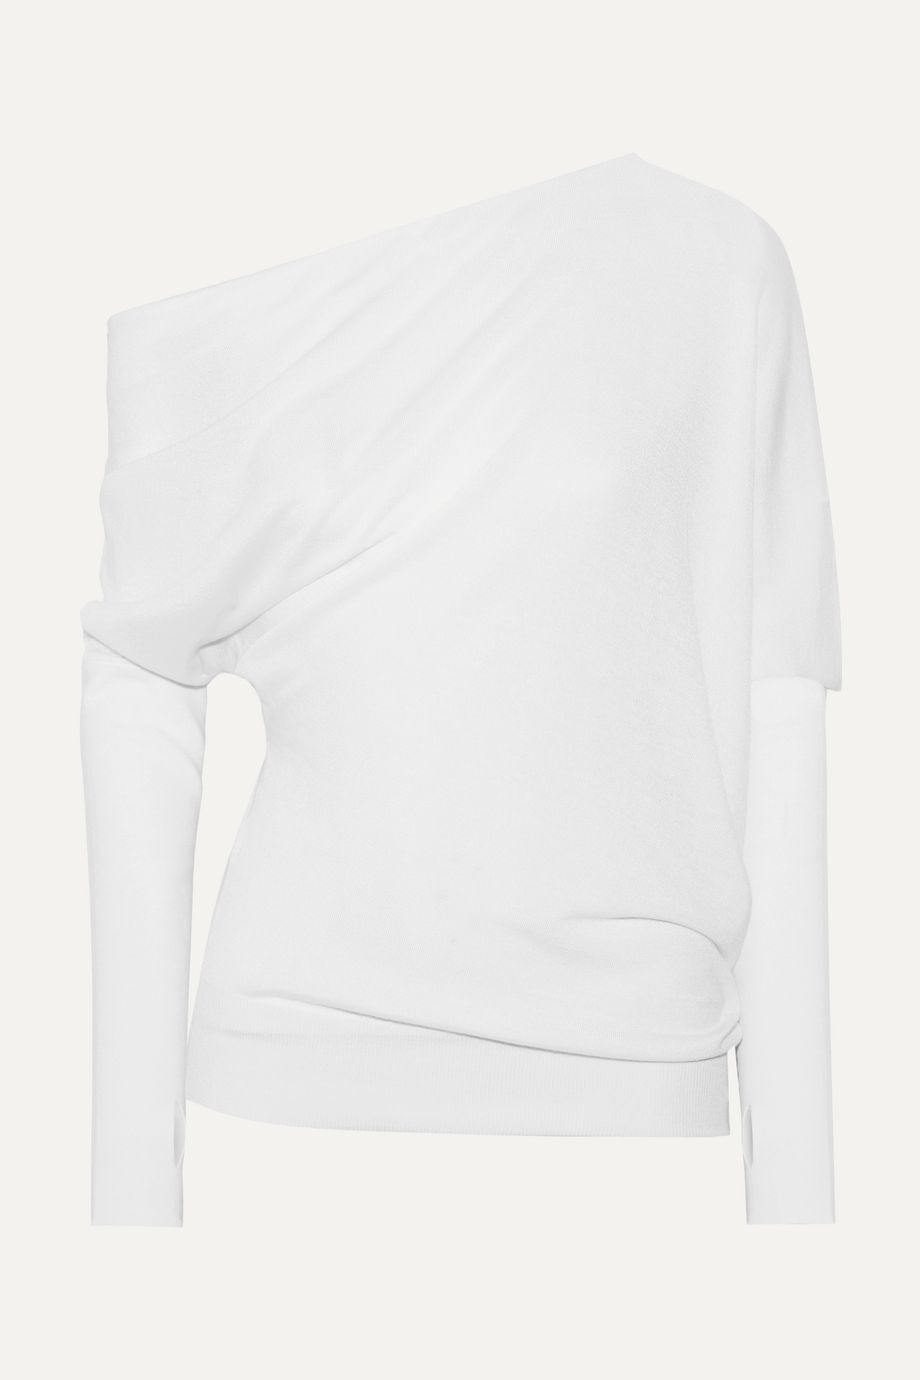 TOM FORD One-shoulder draped cashmere and silk-blend sweater